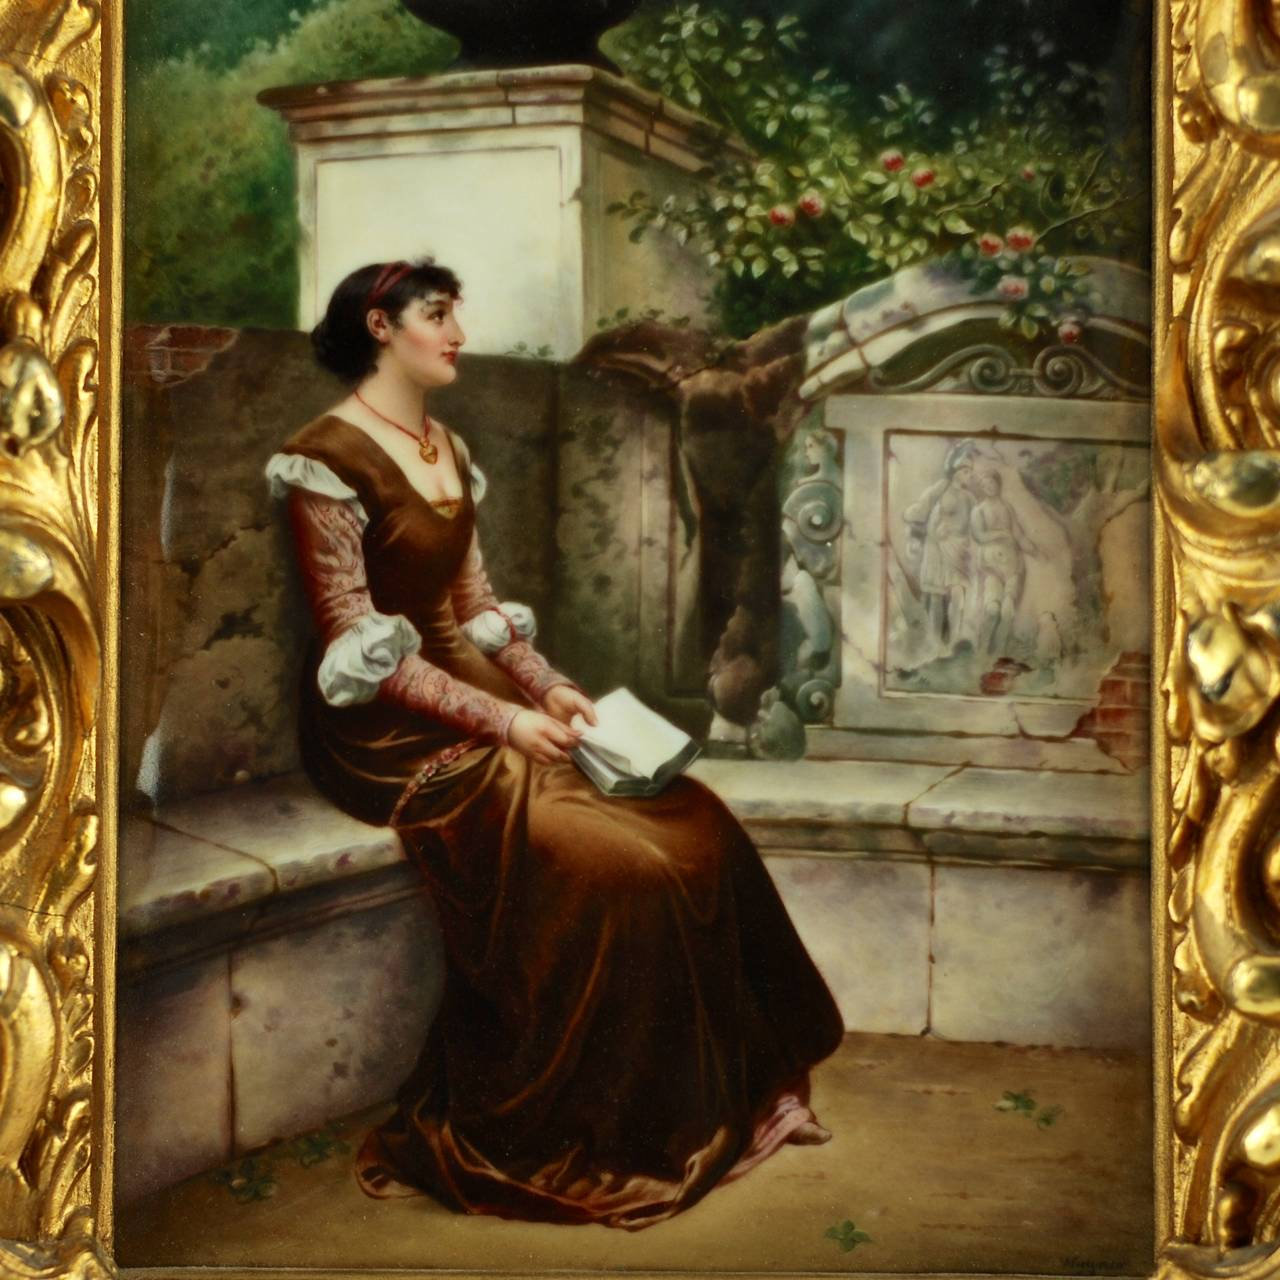 This 19th century artwork was executed in enamel on porcelain by noted KPM artist Wagner. The piece is titled 'Erinnerungen', translated as 'Memories'.  The painting has a wistful romantic theme and depicts a dark haired young woman in reverie.